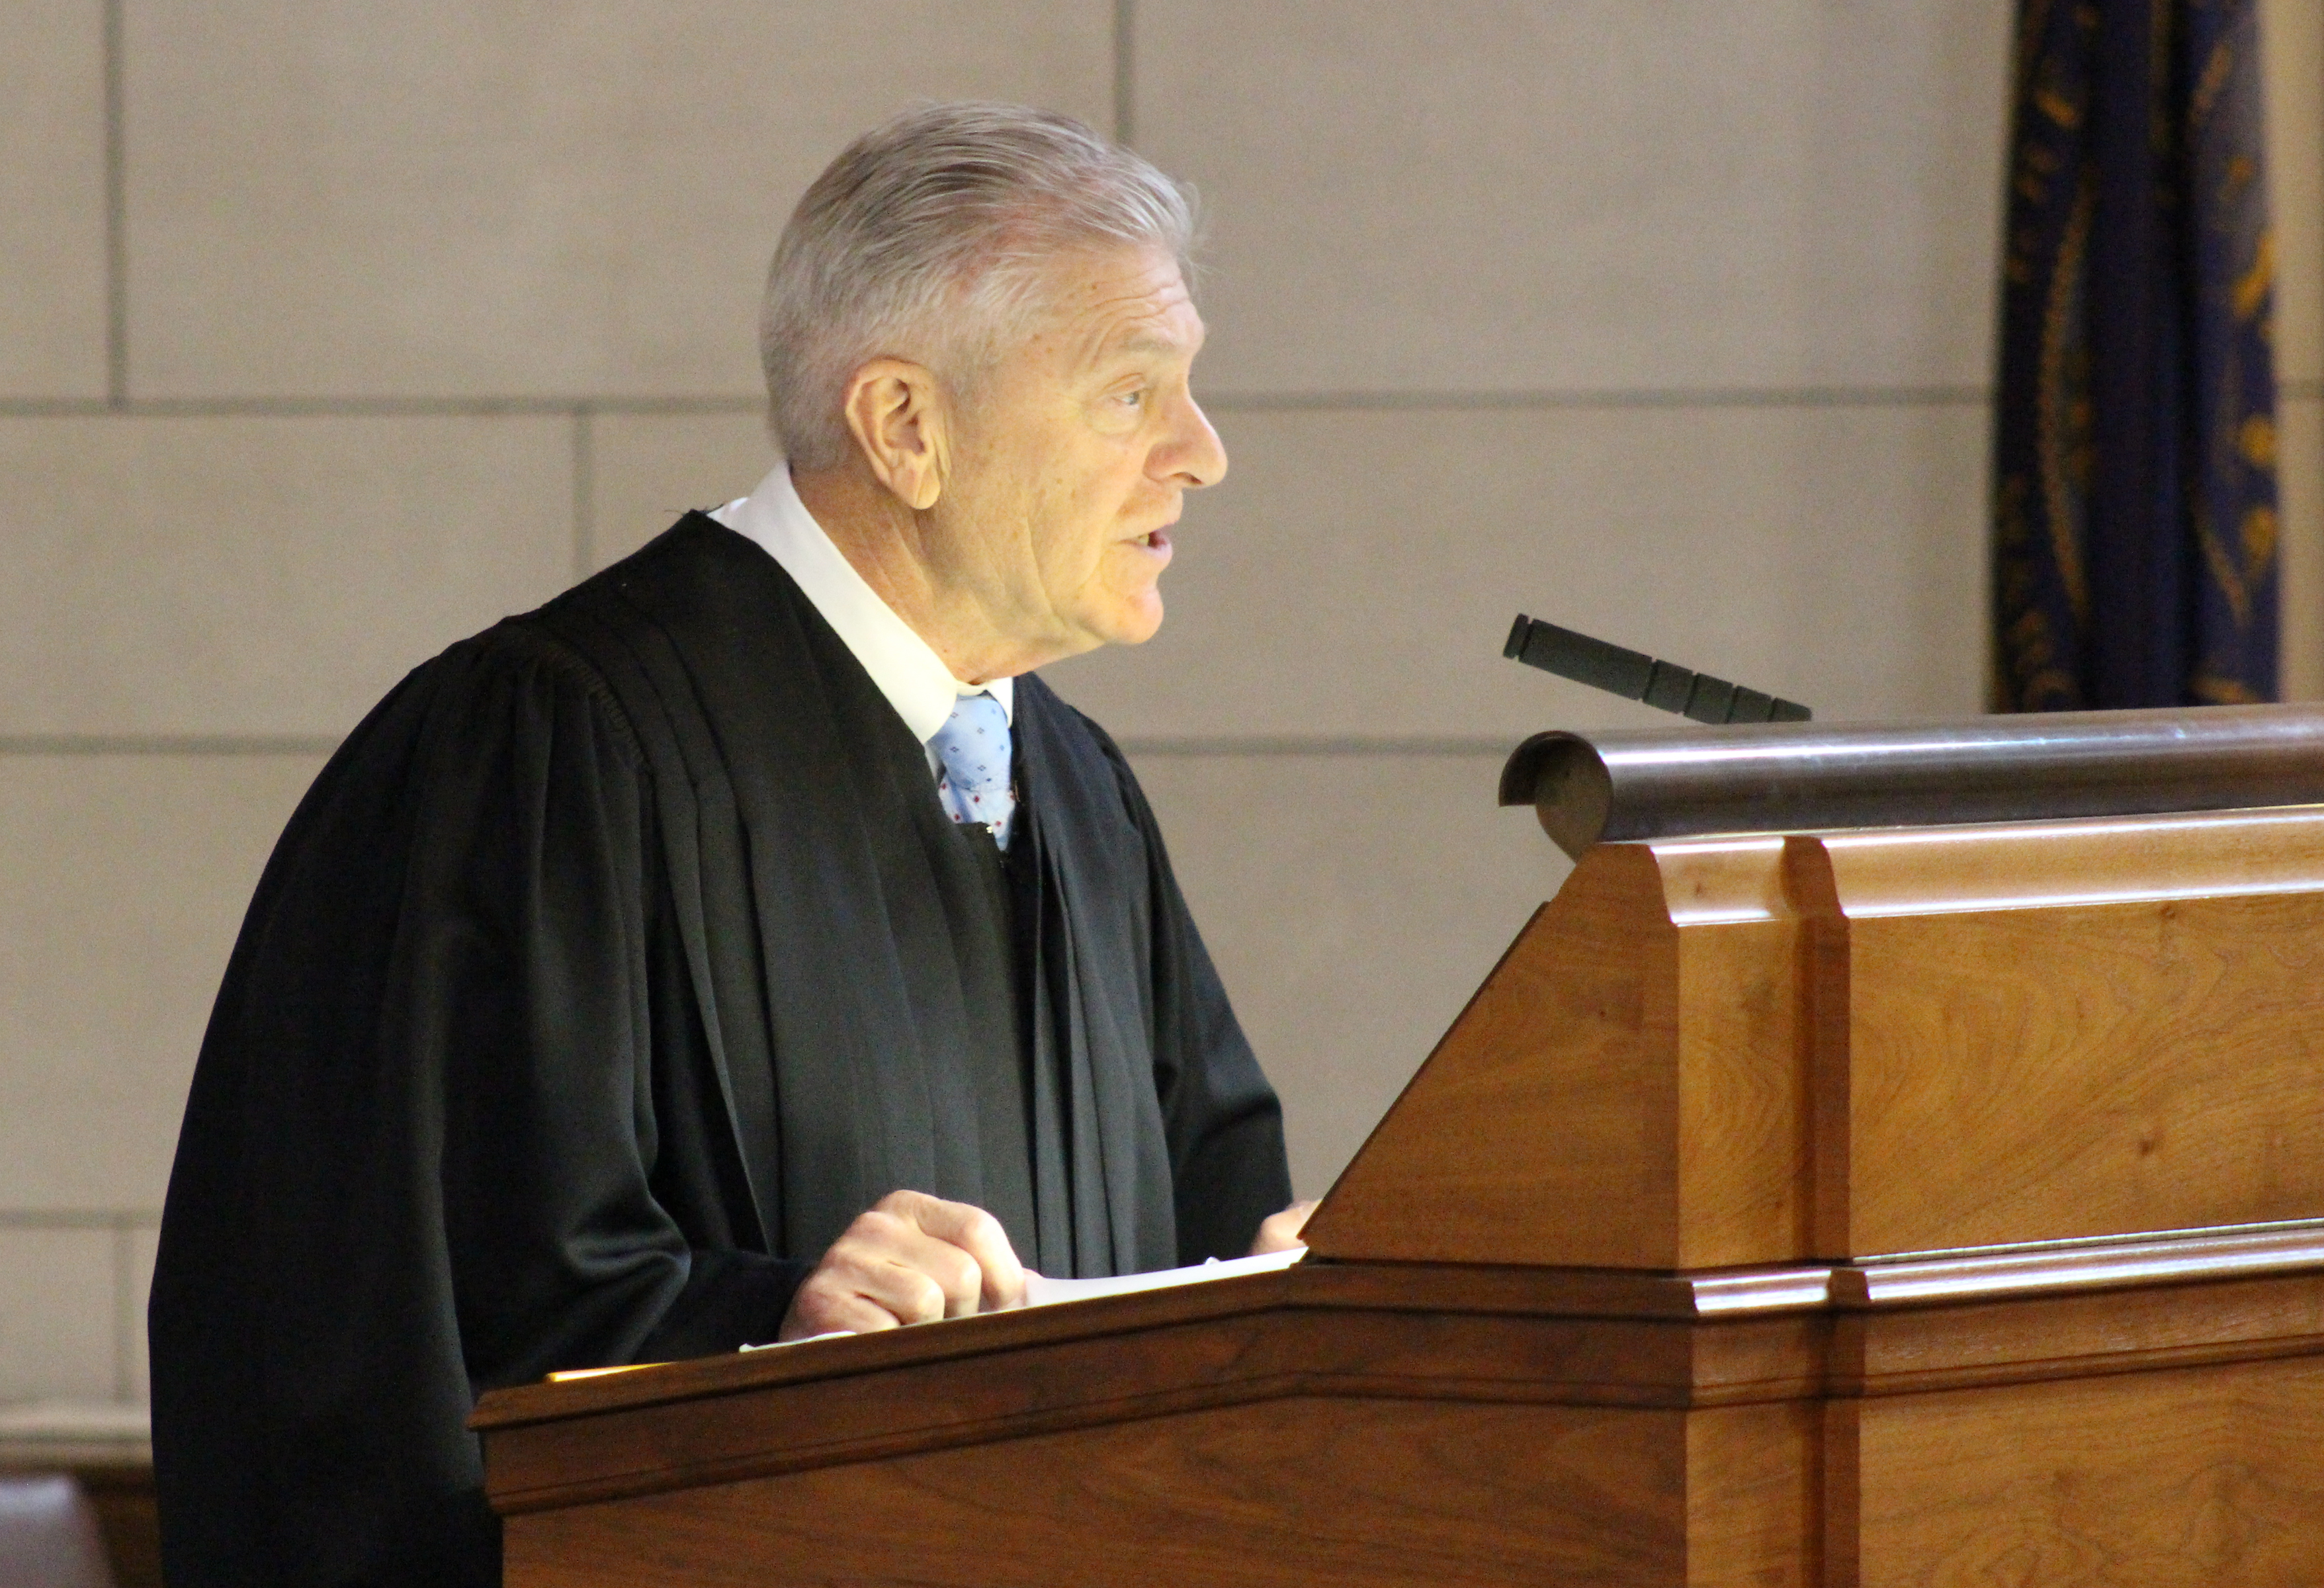 Nebraska Supreme Court Chief Justice Michael Heavican delivers the State of the Judiciary address to lawmakers at the Nebraska Legislature on Wednesday, Jan. 22, 2020. (Photo by Scott Stewart)